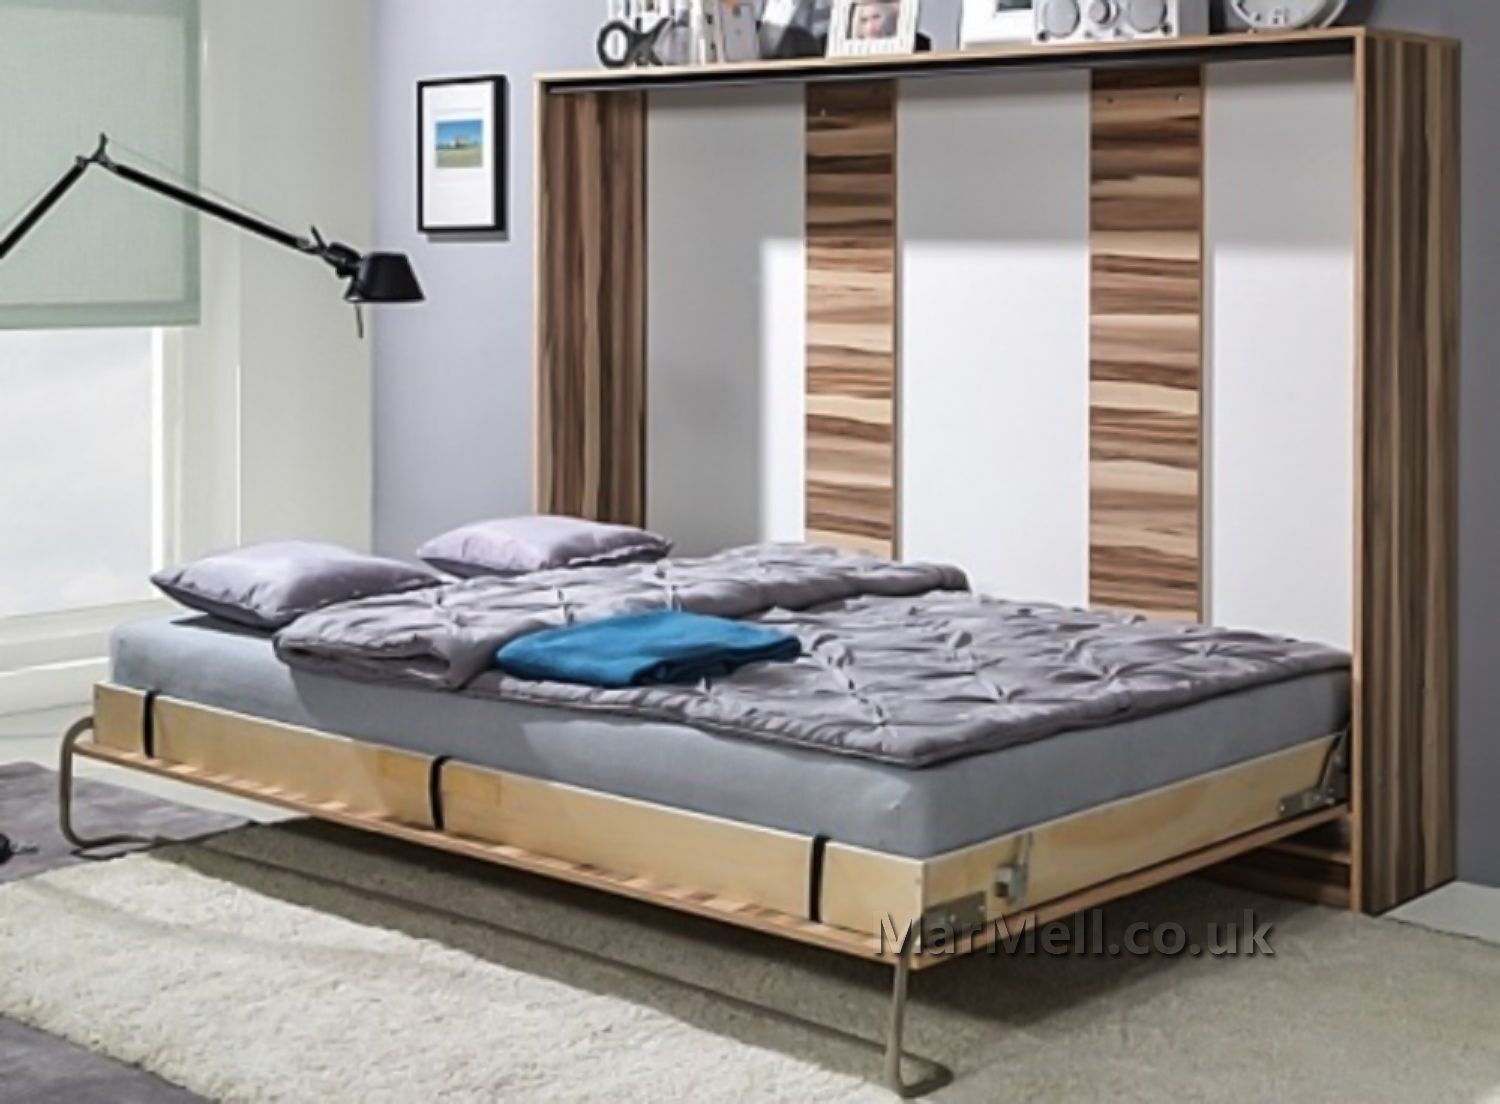 Murphy Bed 90cm Horizontal Smart Bed Multiple Colours Wall Bed Bed Cabinet For Sale Ebay